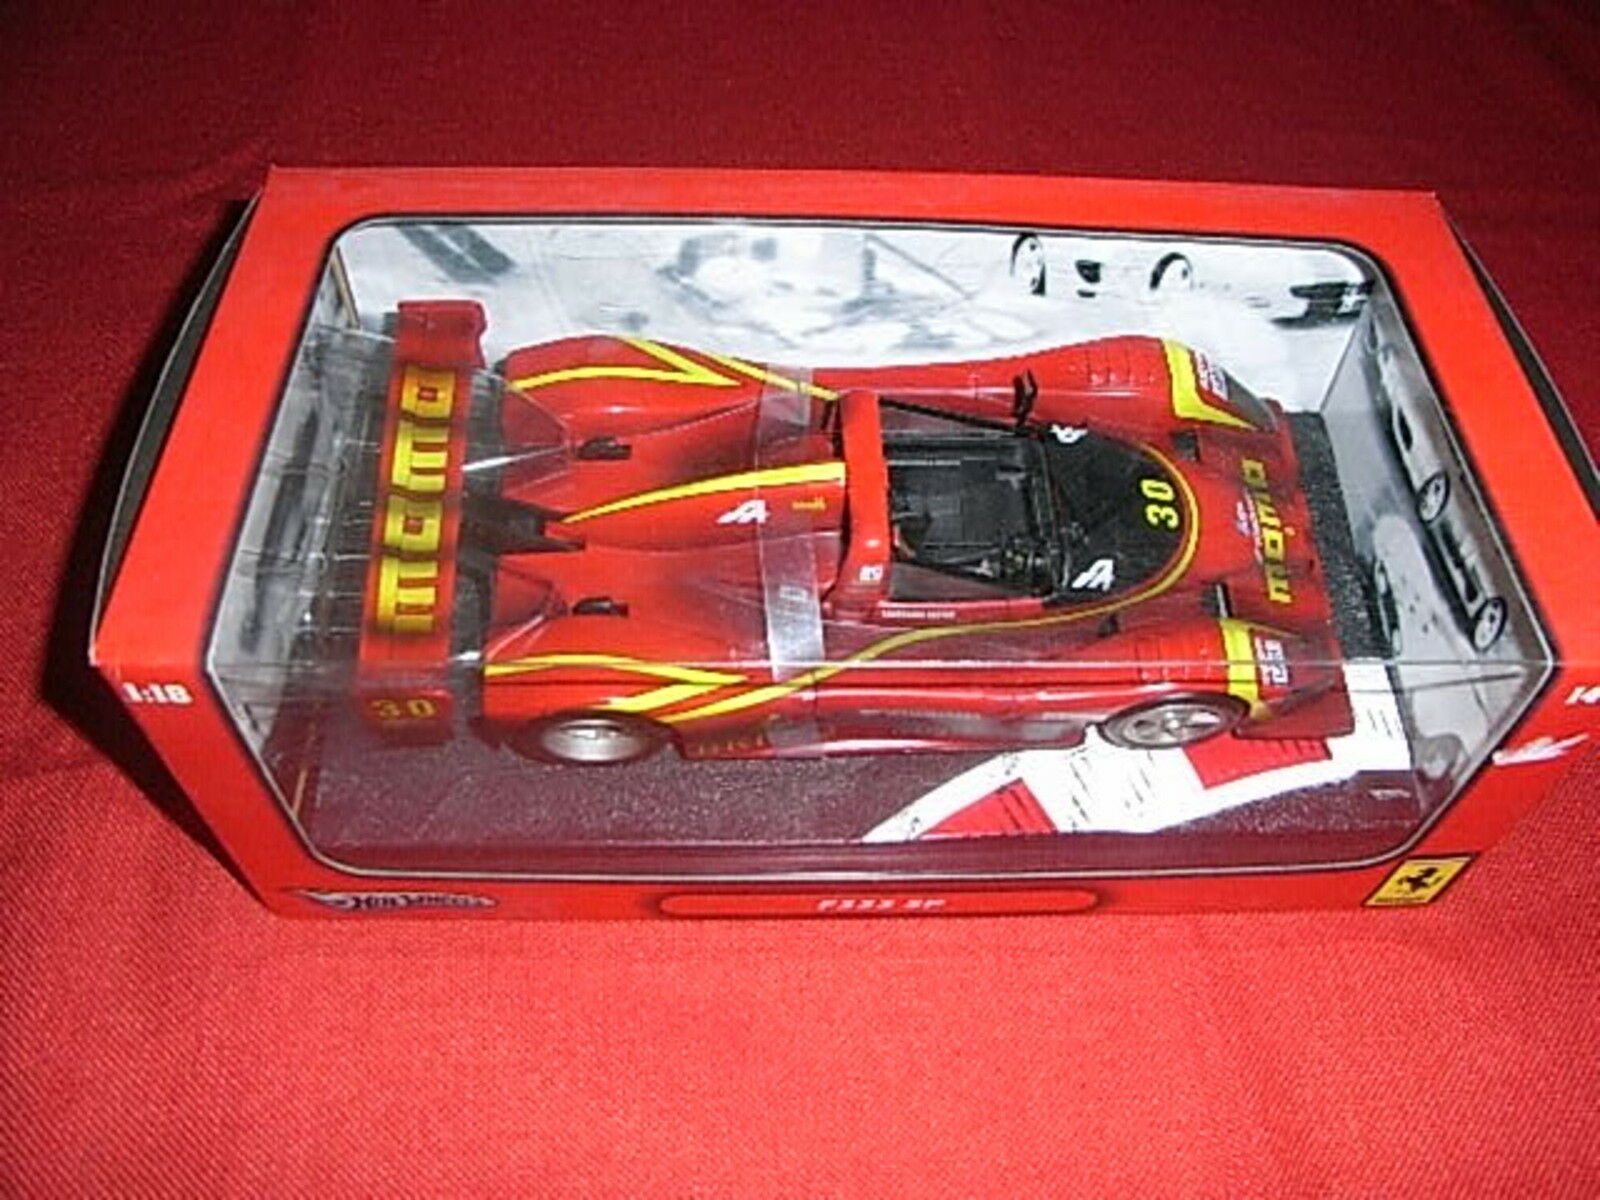 HOT WHEELS ® k0231 1:18 f333 SP NUOVO OVP